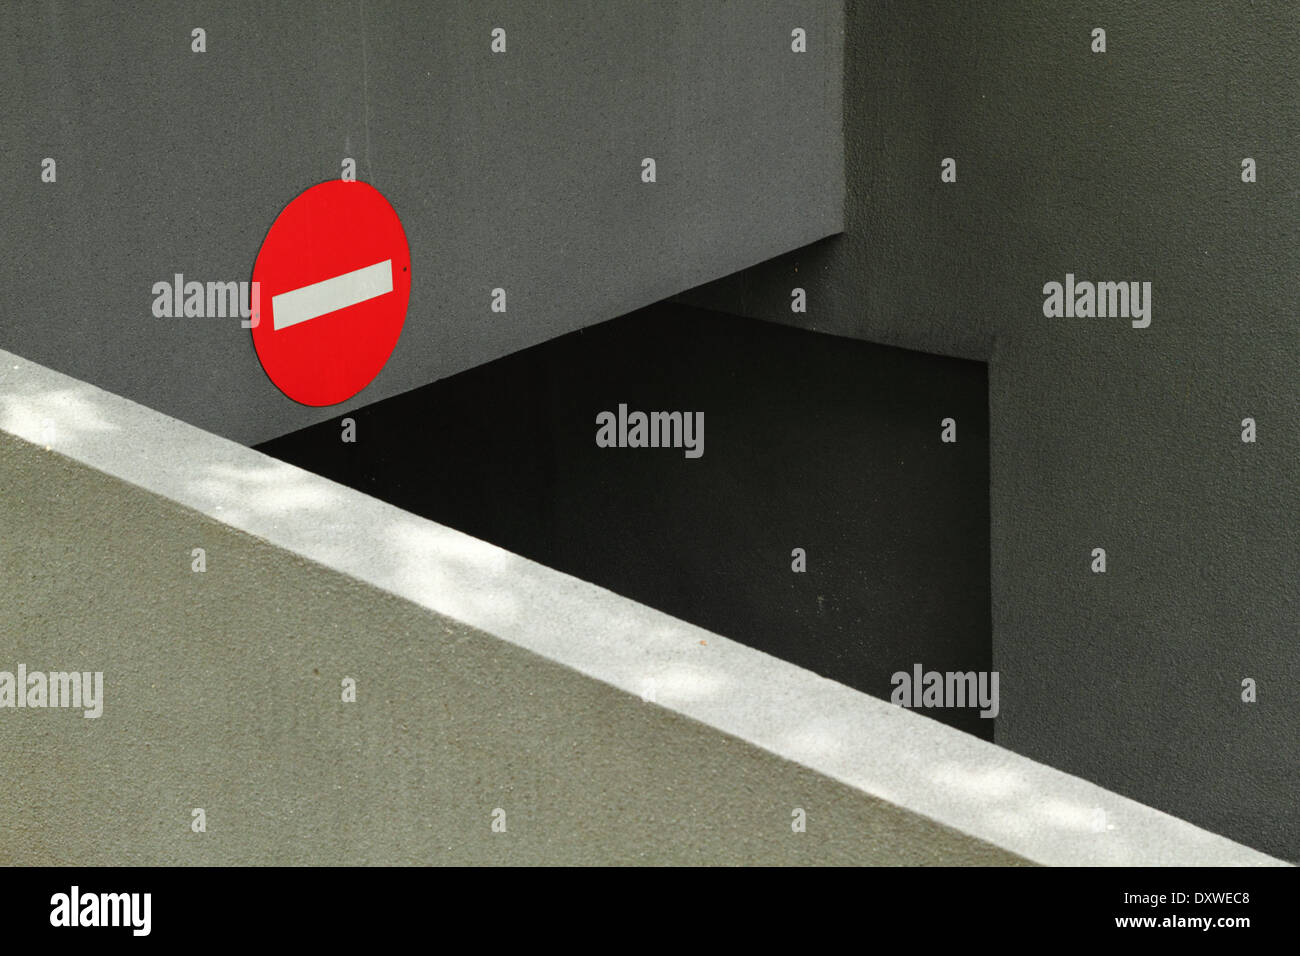 Abstract of an underground car park exit - no entry. Kuala Lumpur, Malaysia. - Stock Image